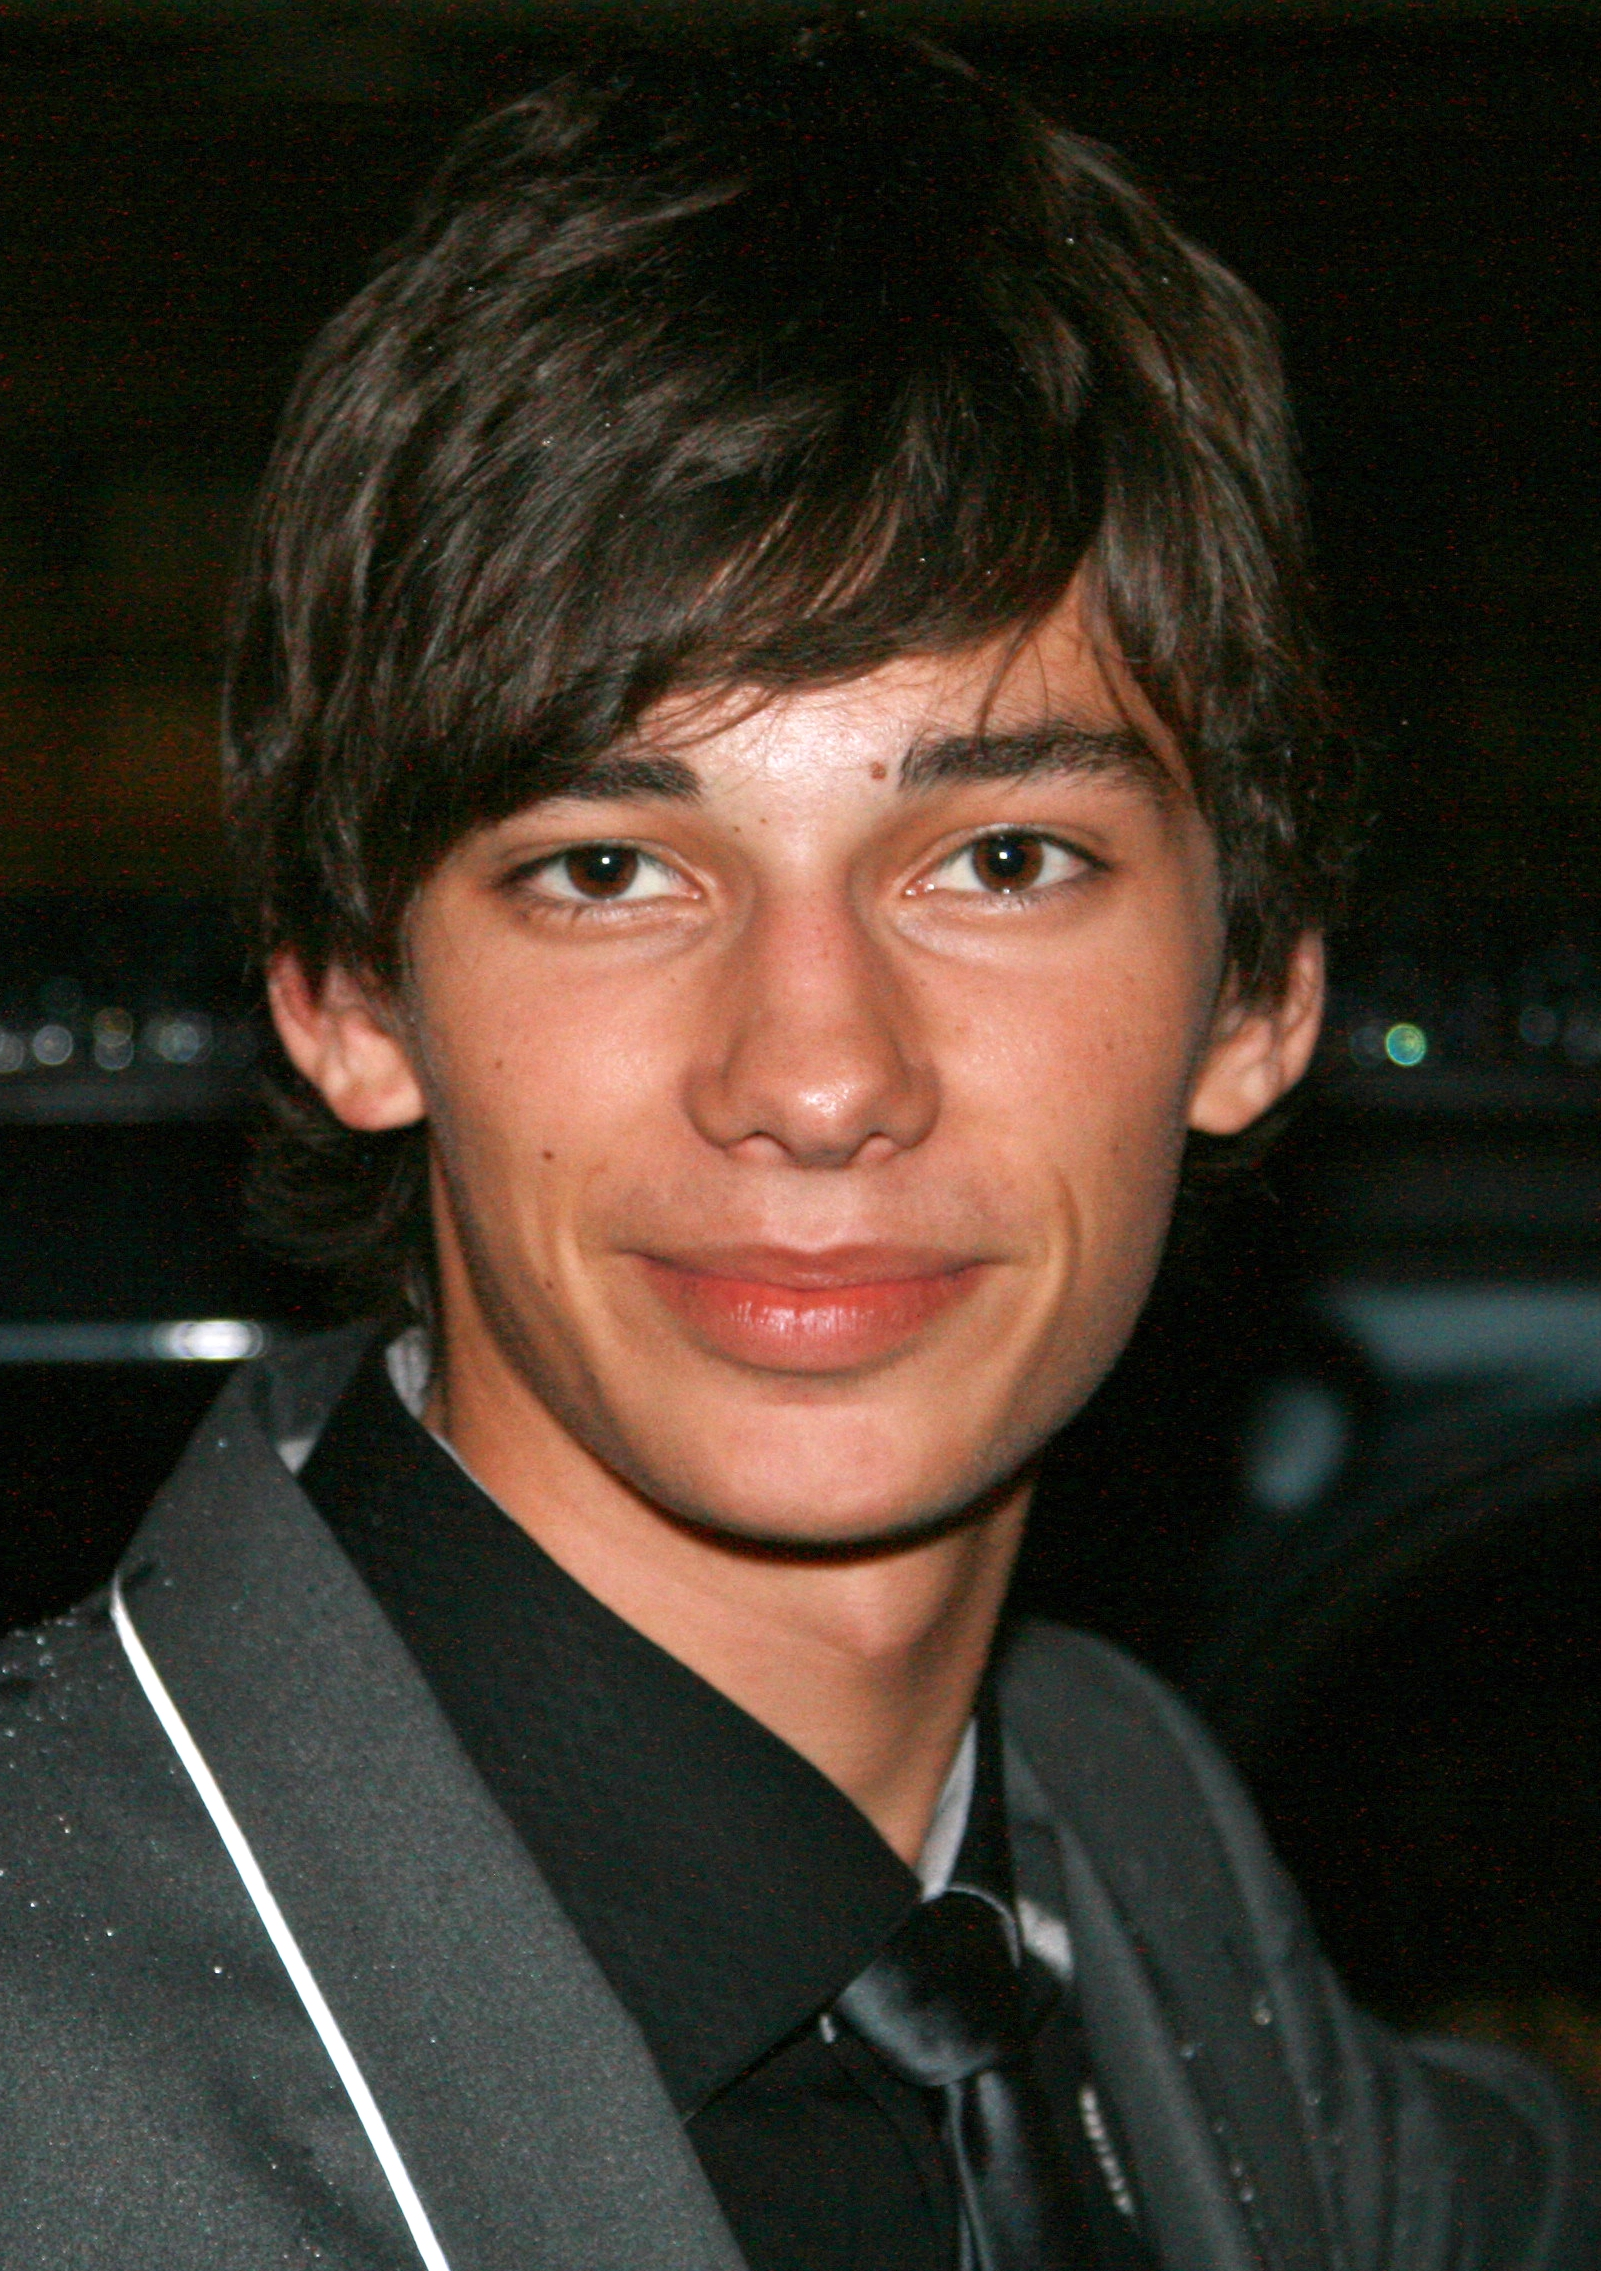 The 26-year old son of father Joe Bostick and mother Stephanie Gorin, 183 cm tall Devon Bostick in 2018 photo